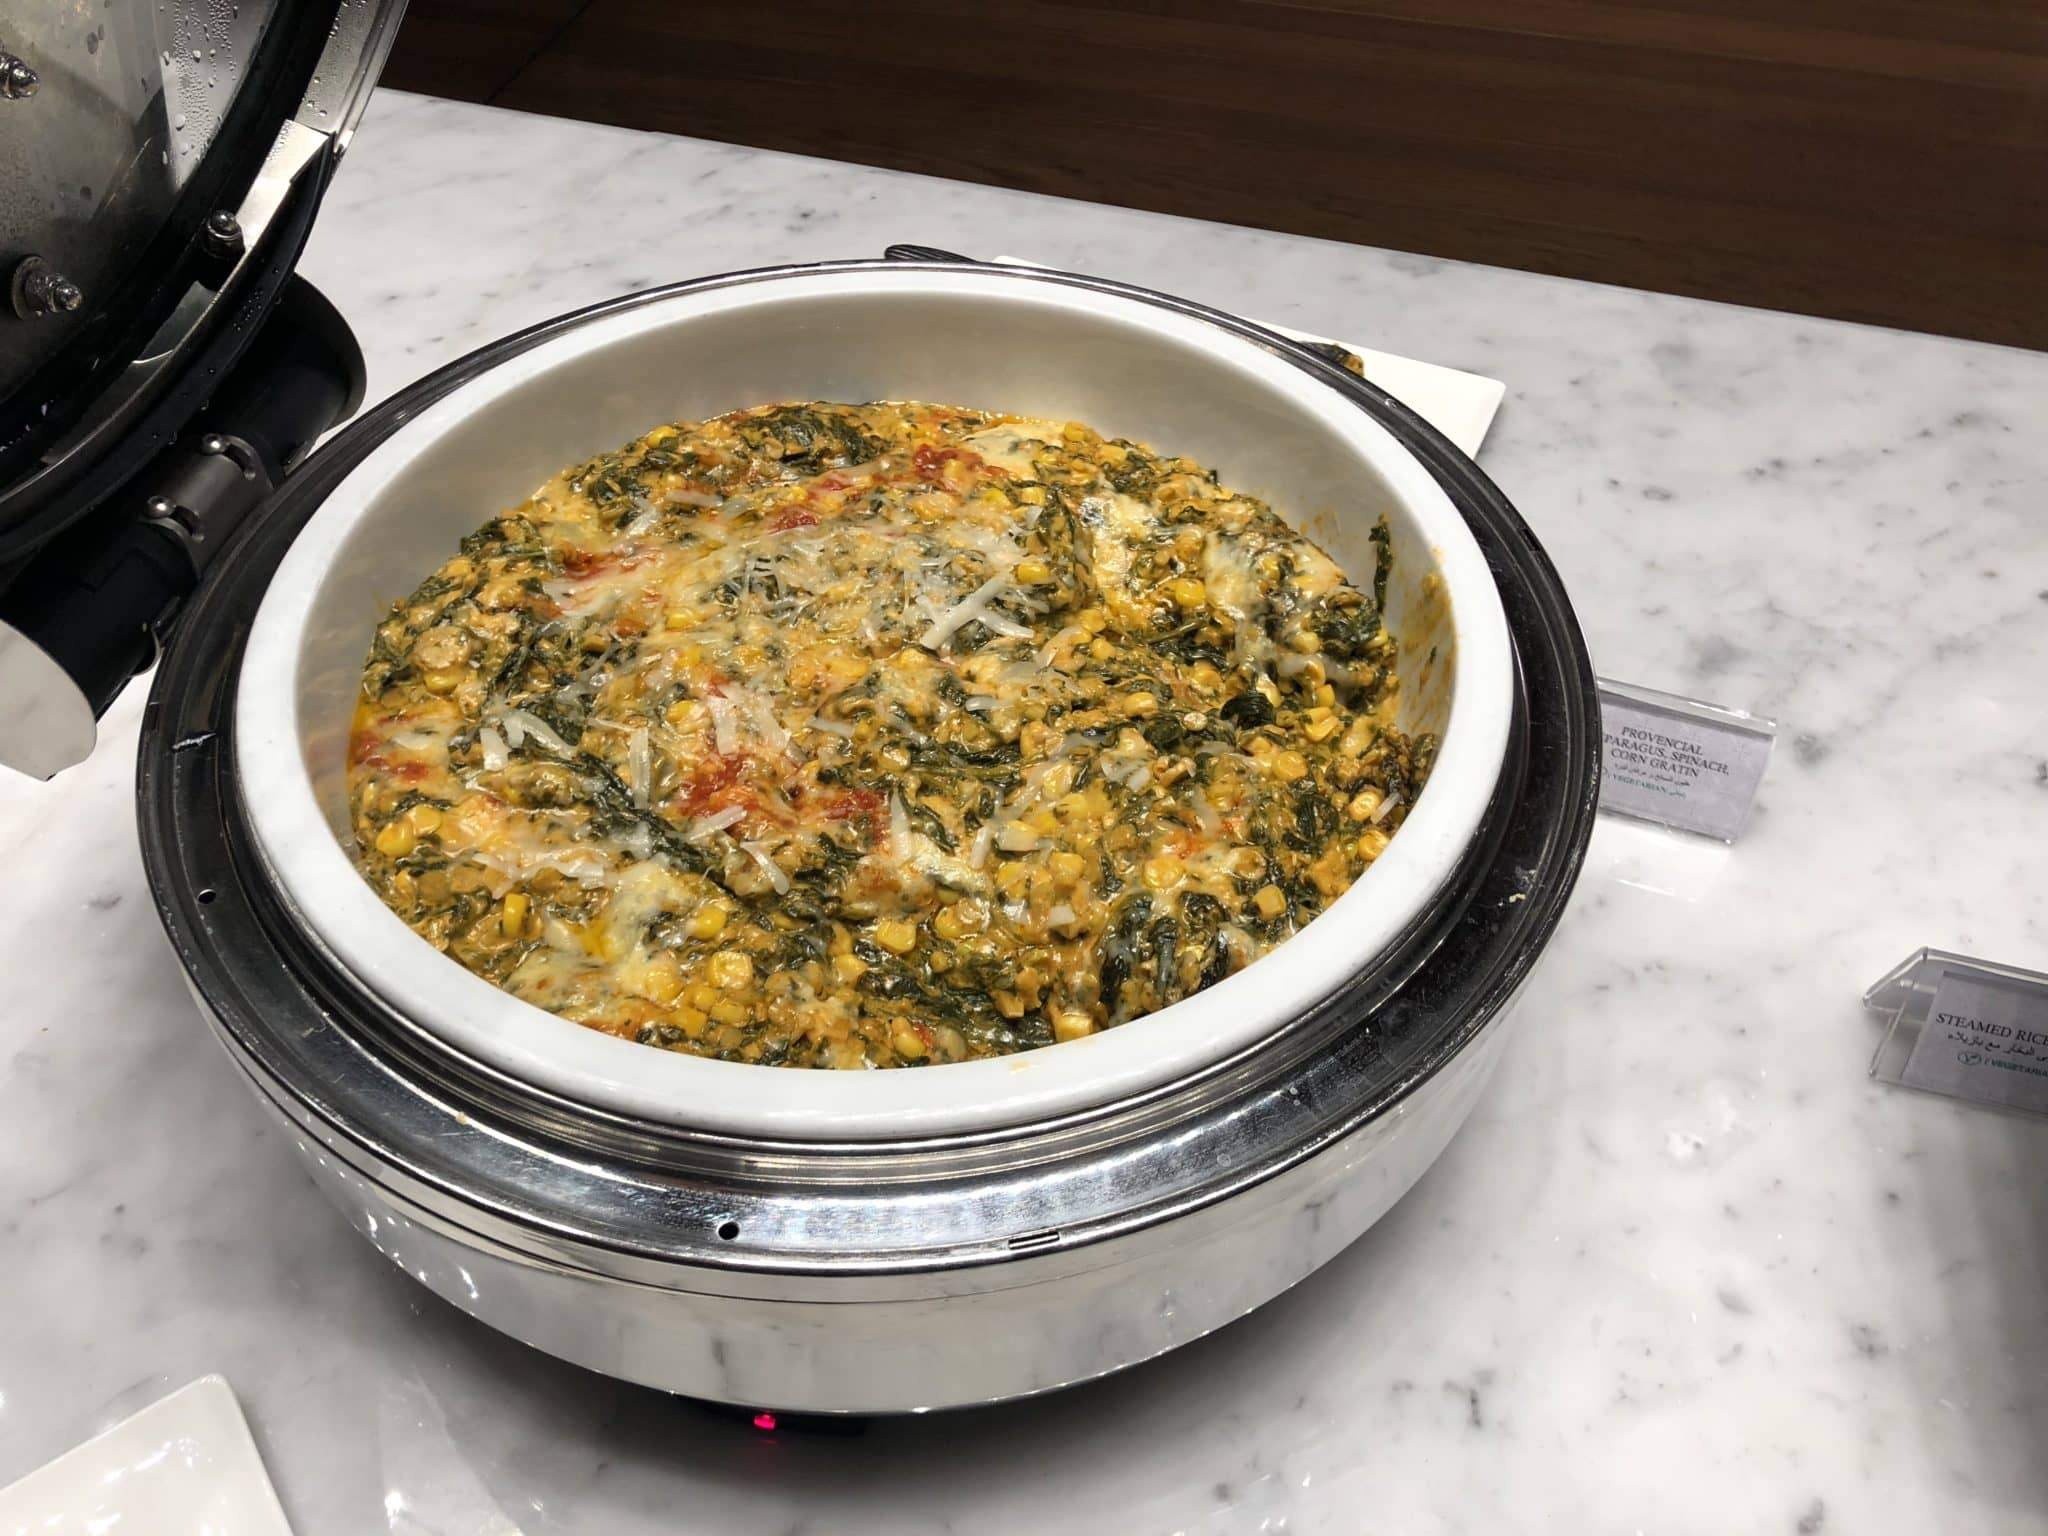 Qatar Airways Al Mourjan Business Class Lounge Spinat Corn Gratin